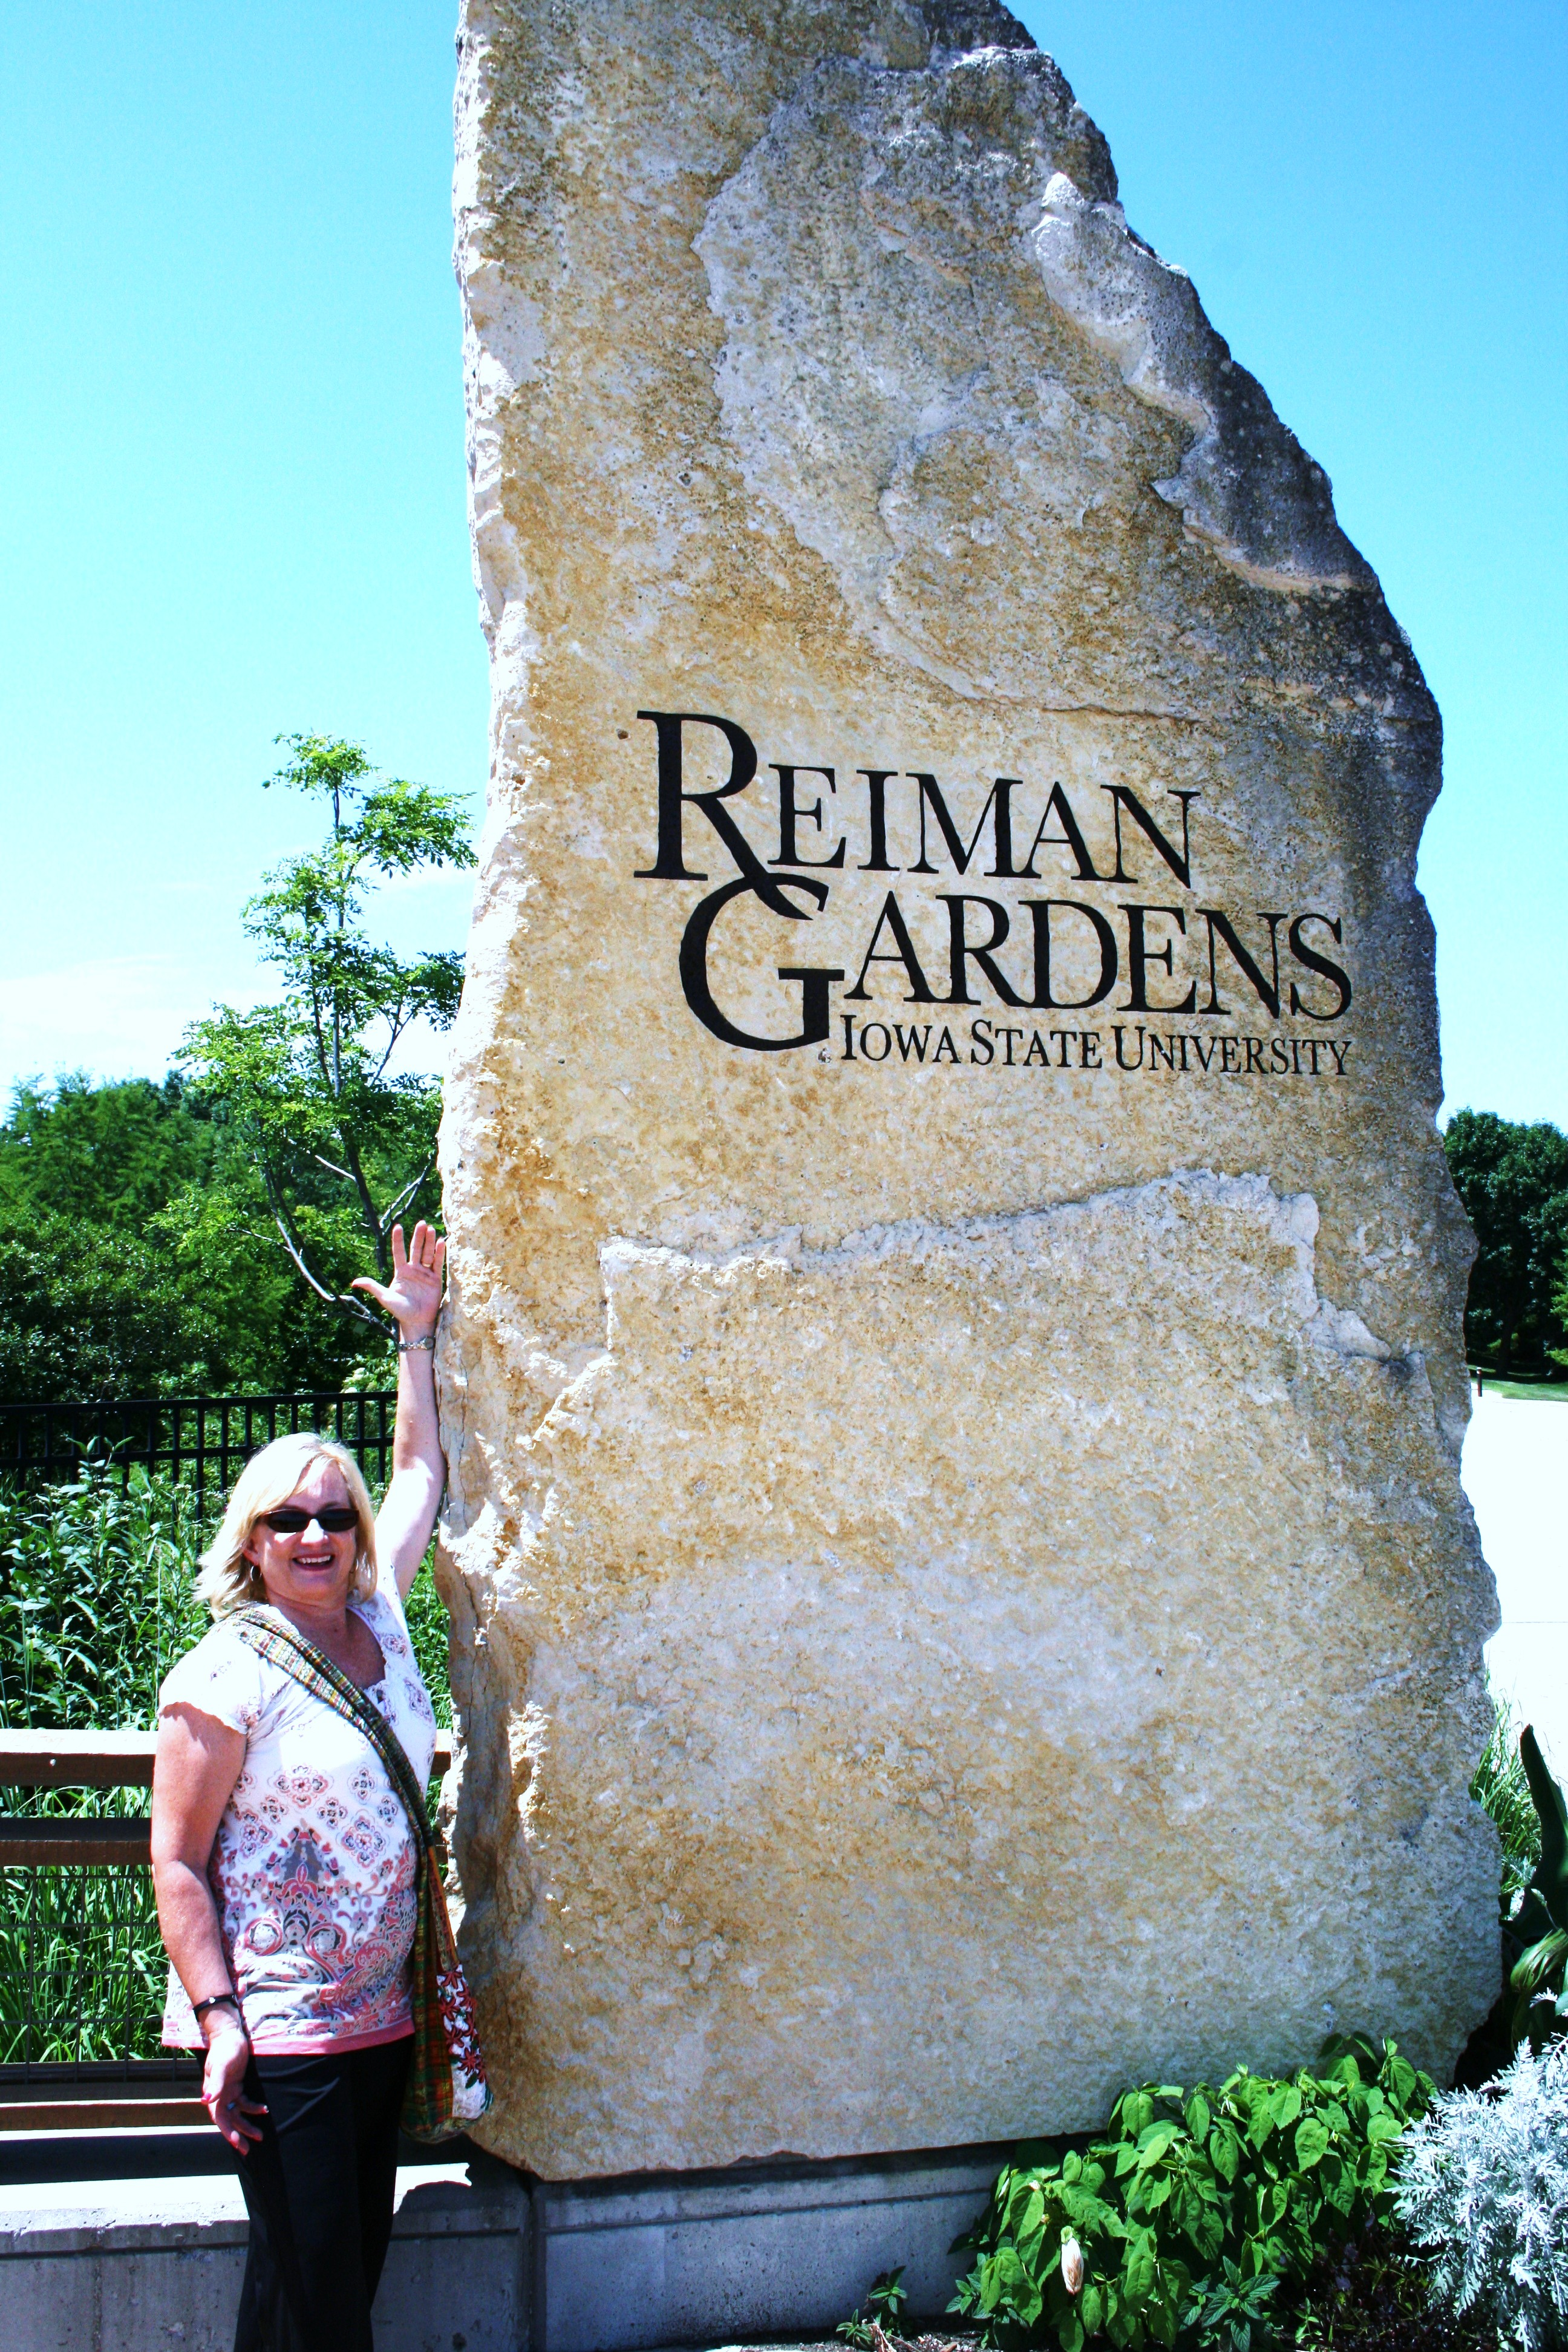 10 Must See Places Off I-80 in Central Iowa - Linda Leier Thomason